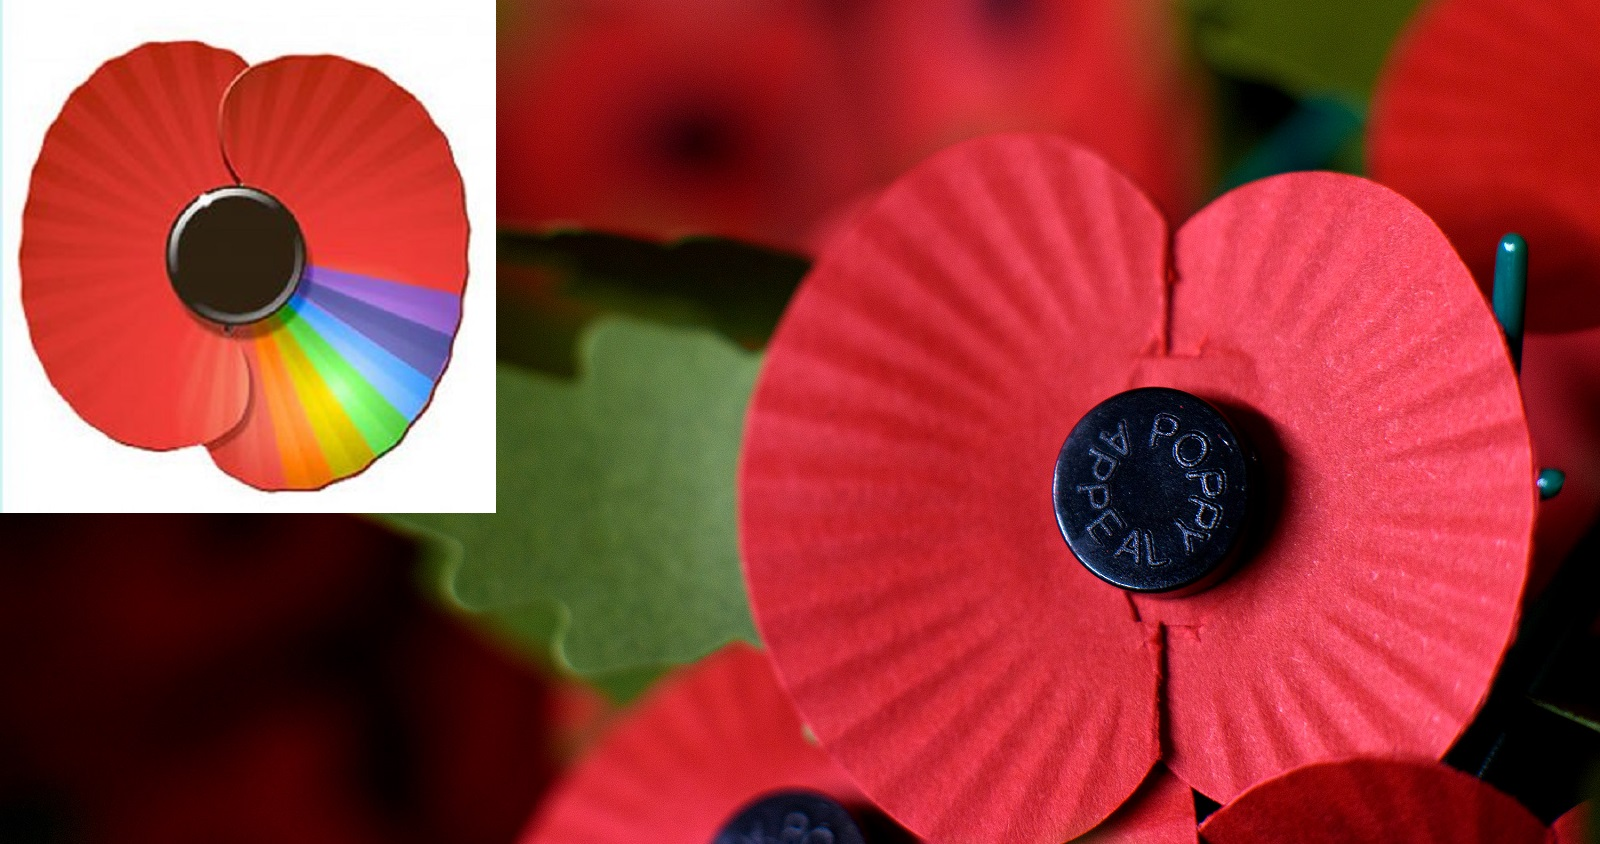 Lgbt Rainbow Poppy Met With Anger On Remembrance Day